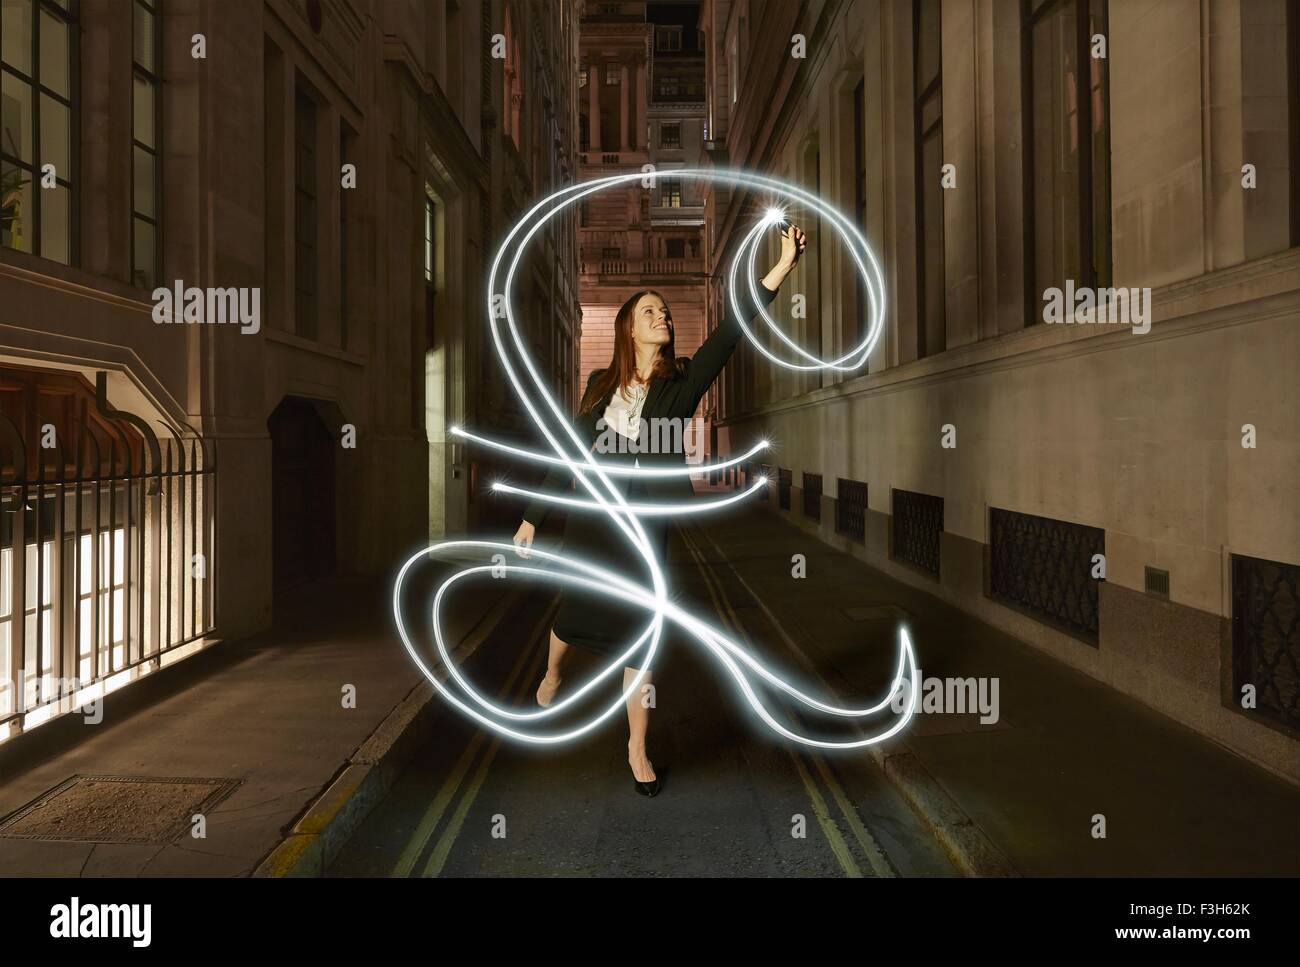 Businesswoman light painting glowing pound sign on city street at night - Stock Image